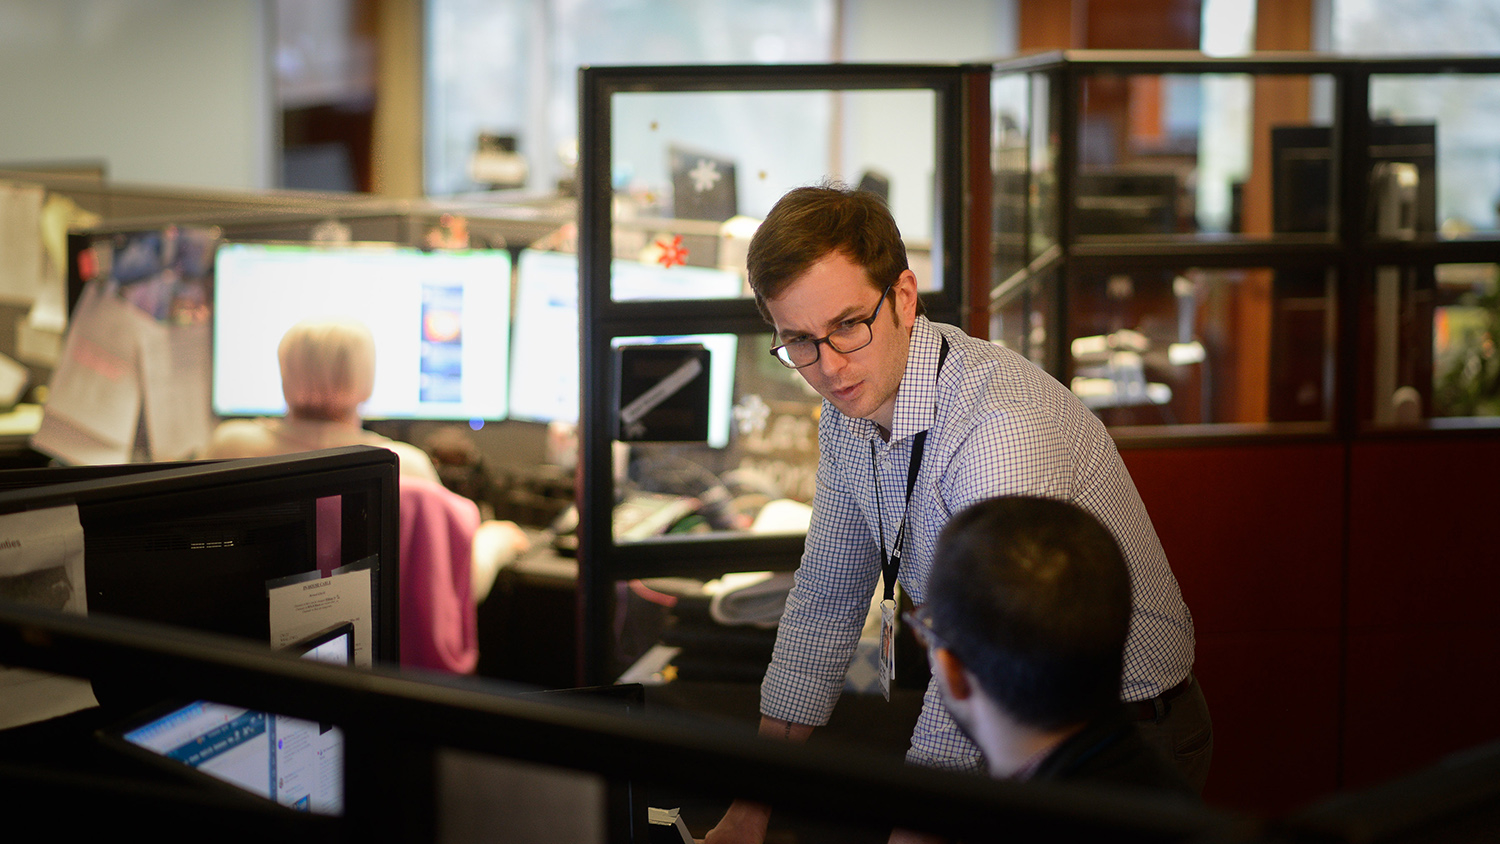 Tyler Dukes talks to a coworker in the newsroom